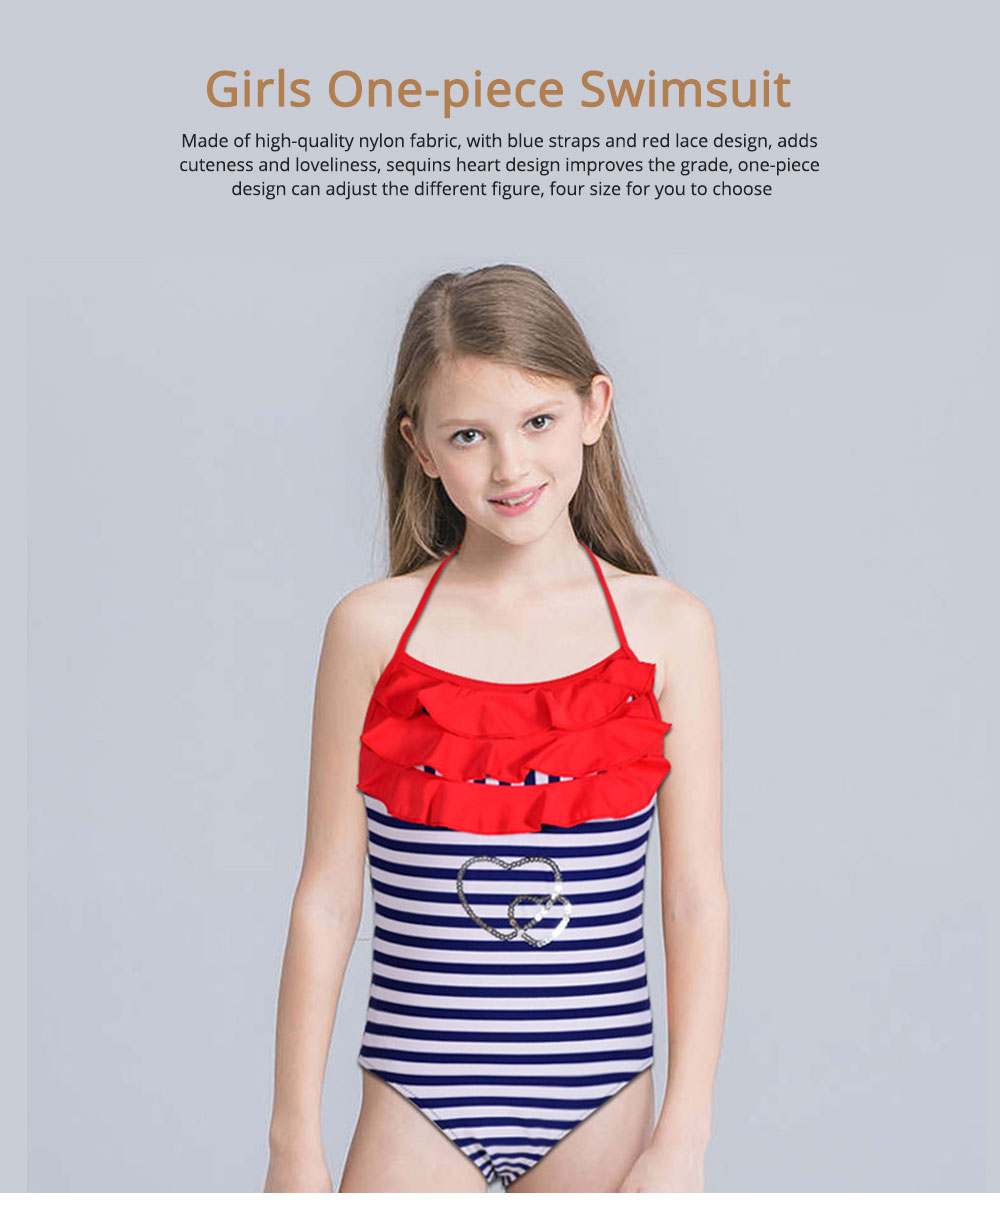 One-piece Swimsuit for Girls, High-quality Nylon Fabric Blue Straps and Red Lace Children's Swimsuit 0